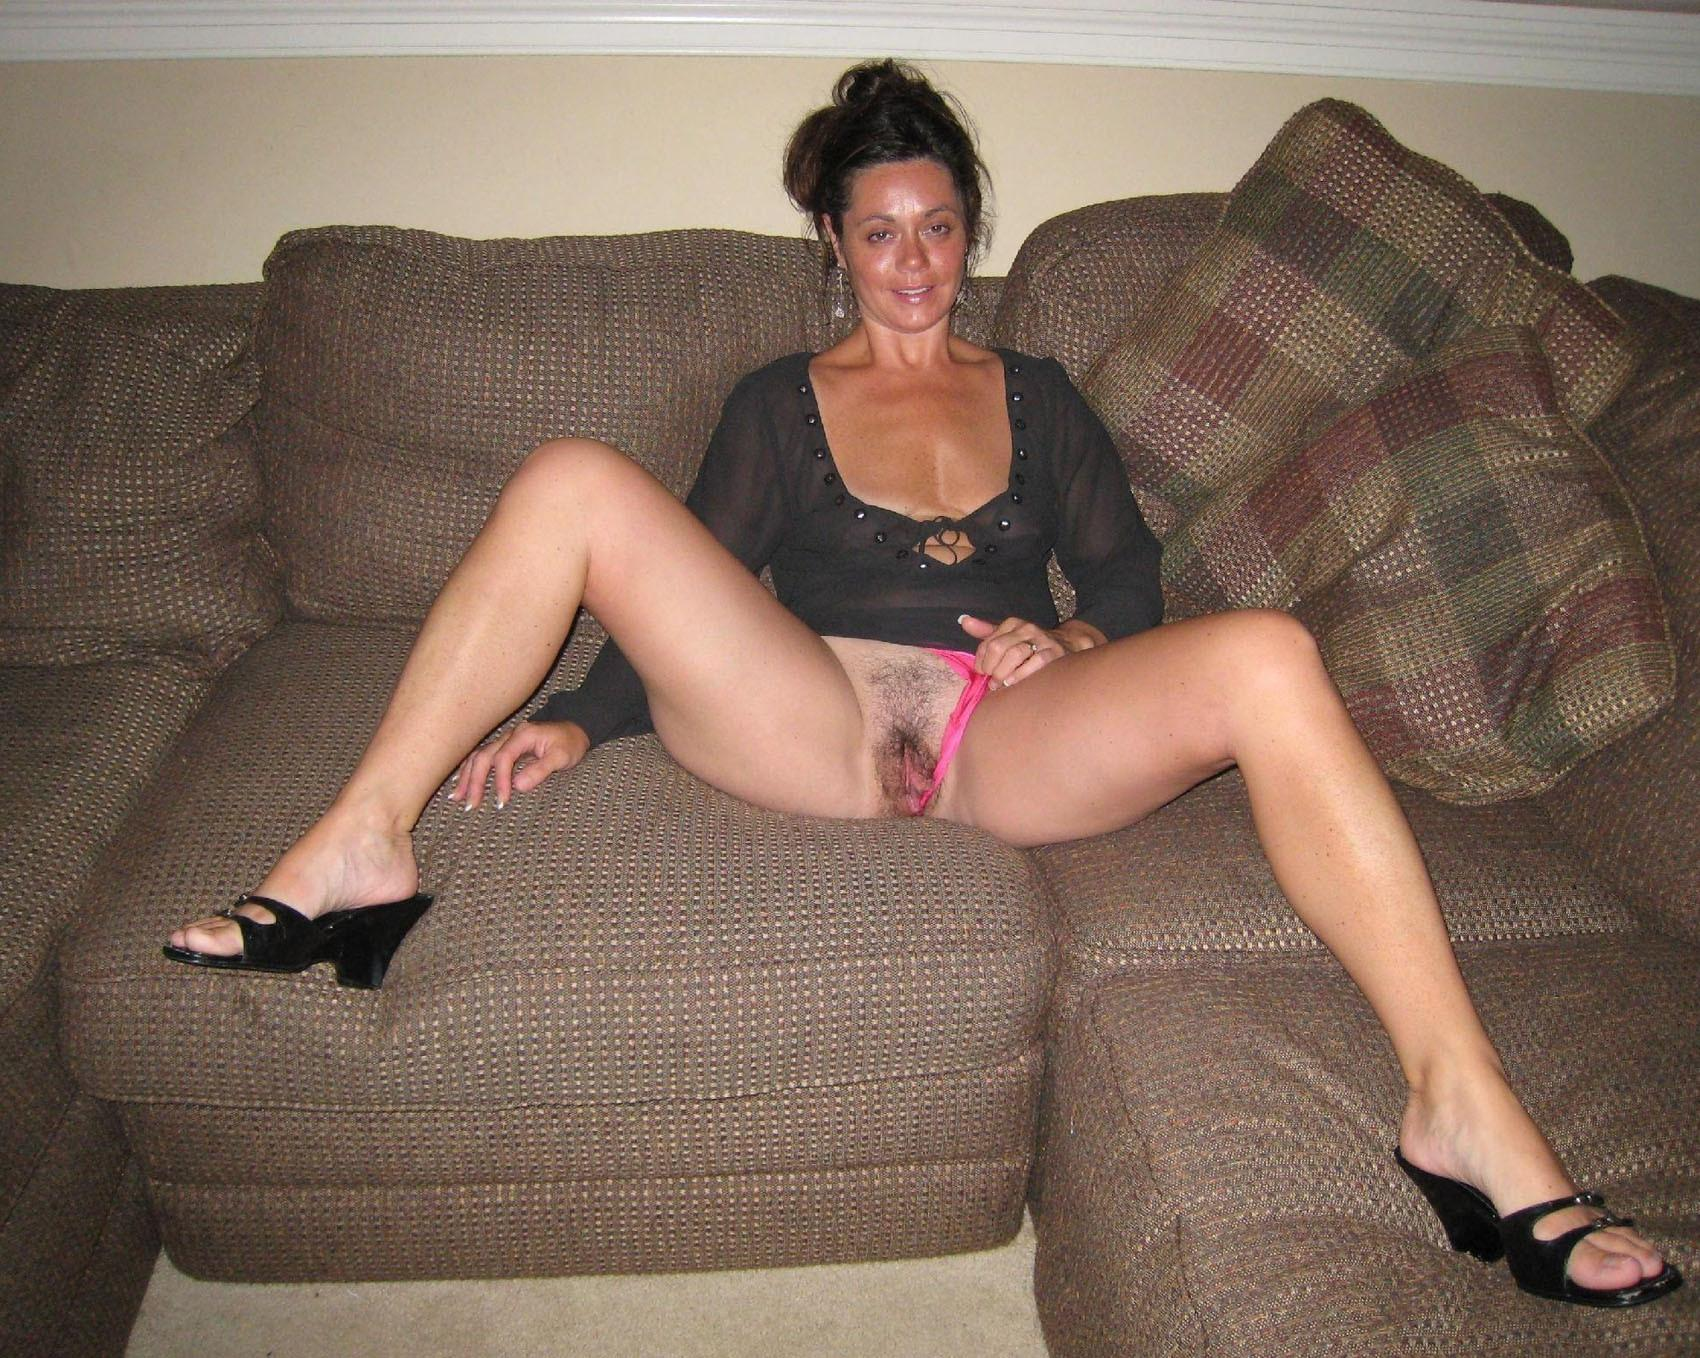 want-longer-ugly-young-pussy-nude-home